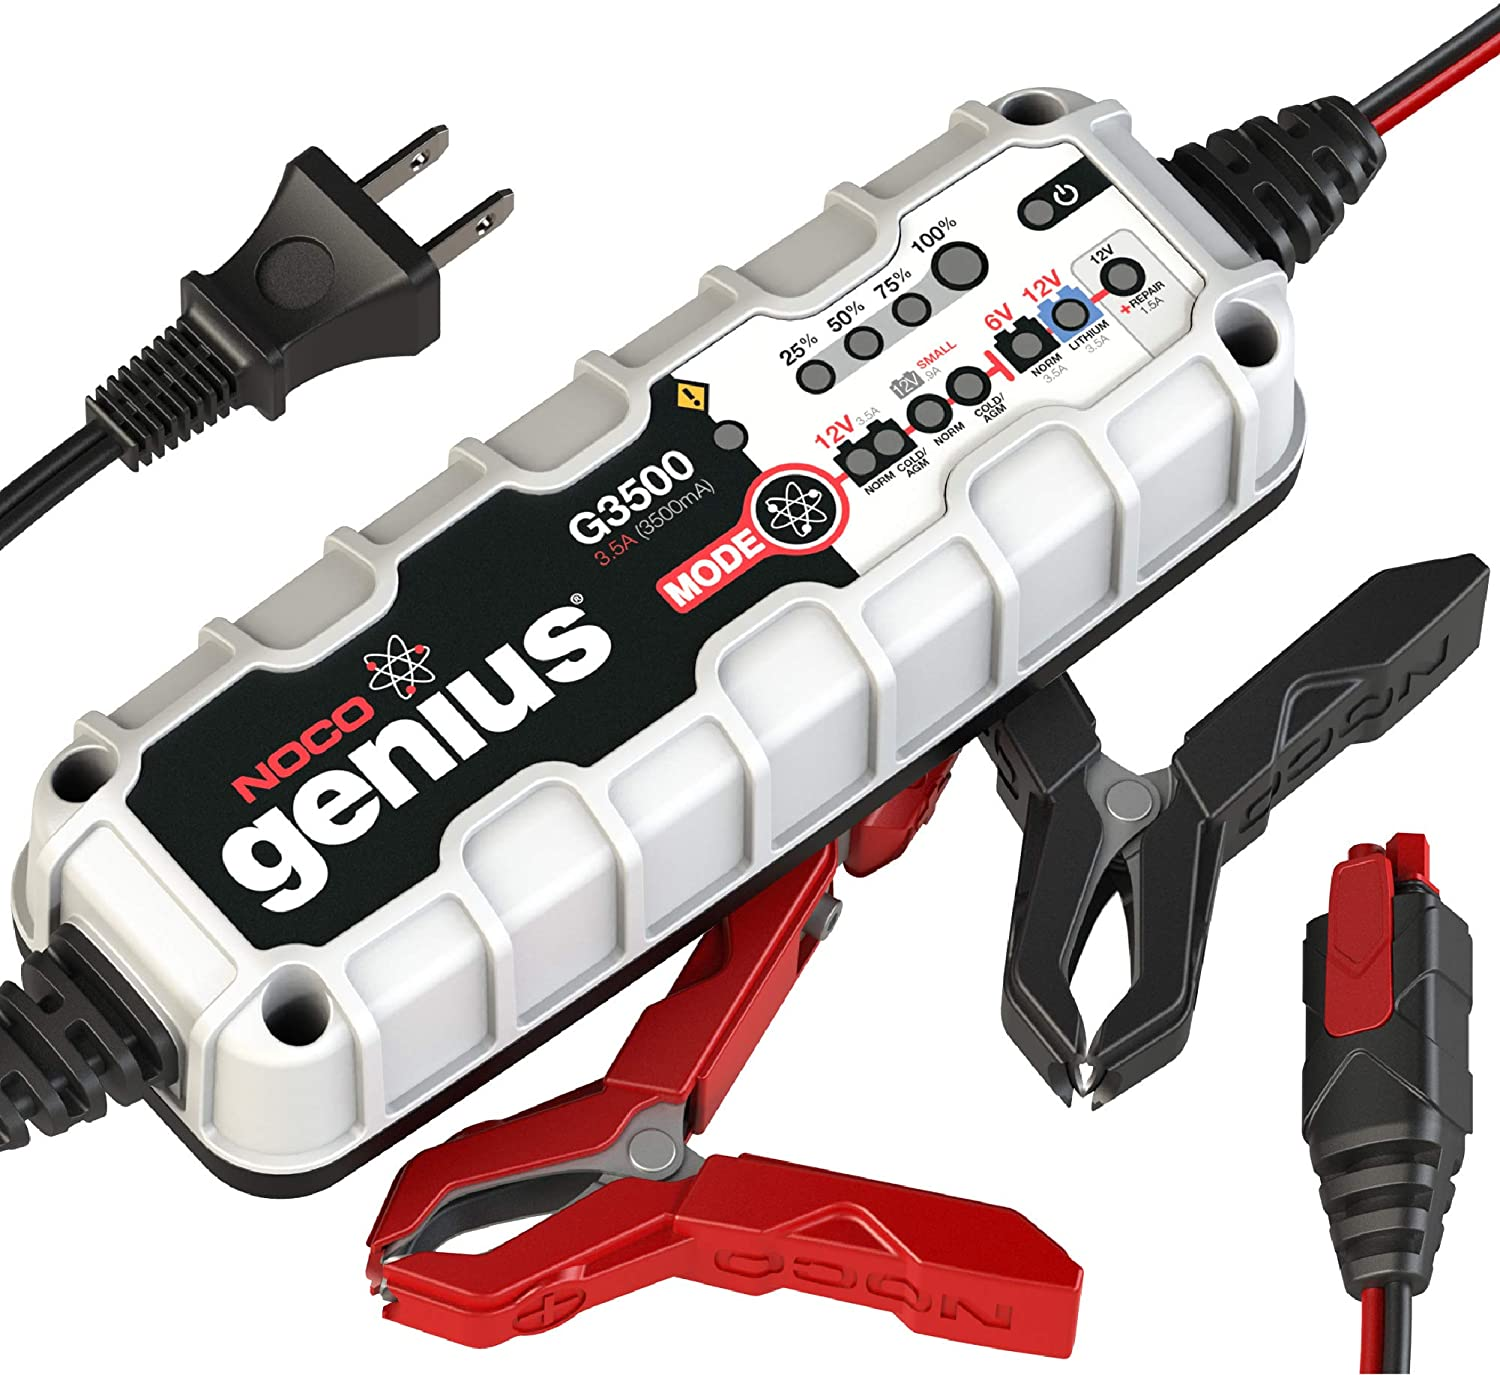 Best Car Battery Charger NOCO Genius G3500 6V/12V 3.5 Amp Battery Charger